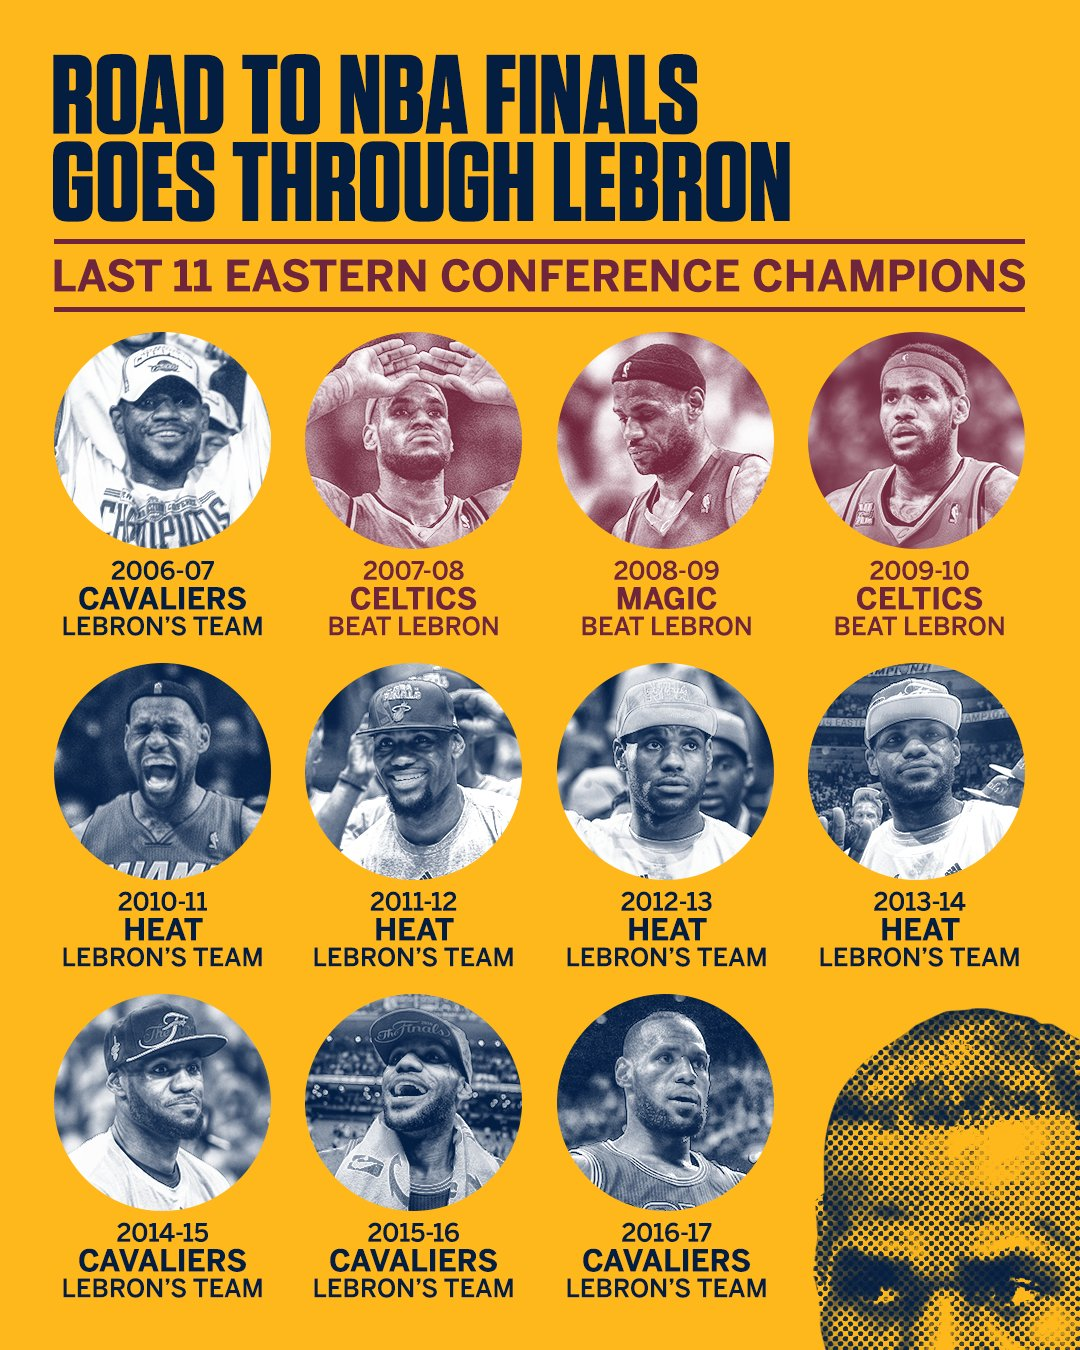 You have to go through LeBron if you want to win the East. https://t.co/dwqYyEm1Ua